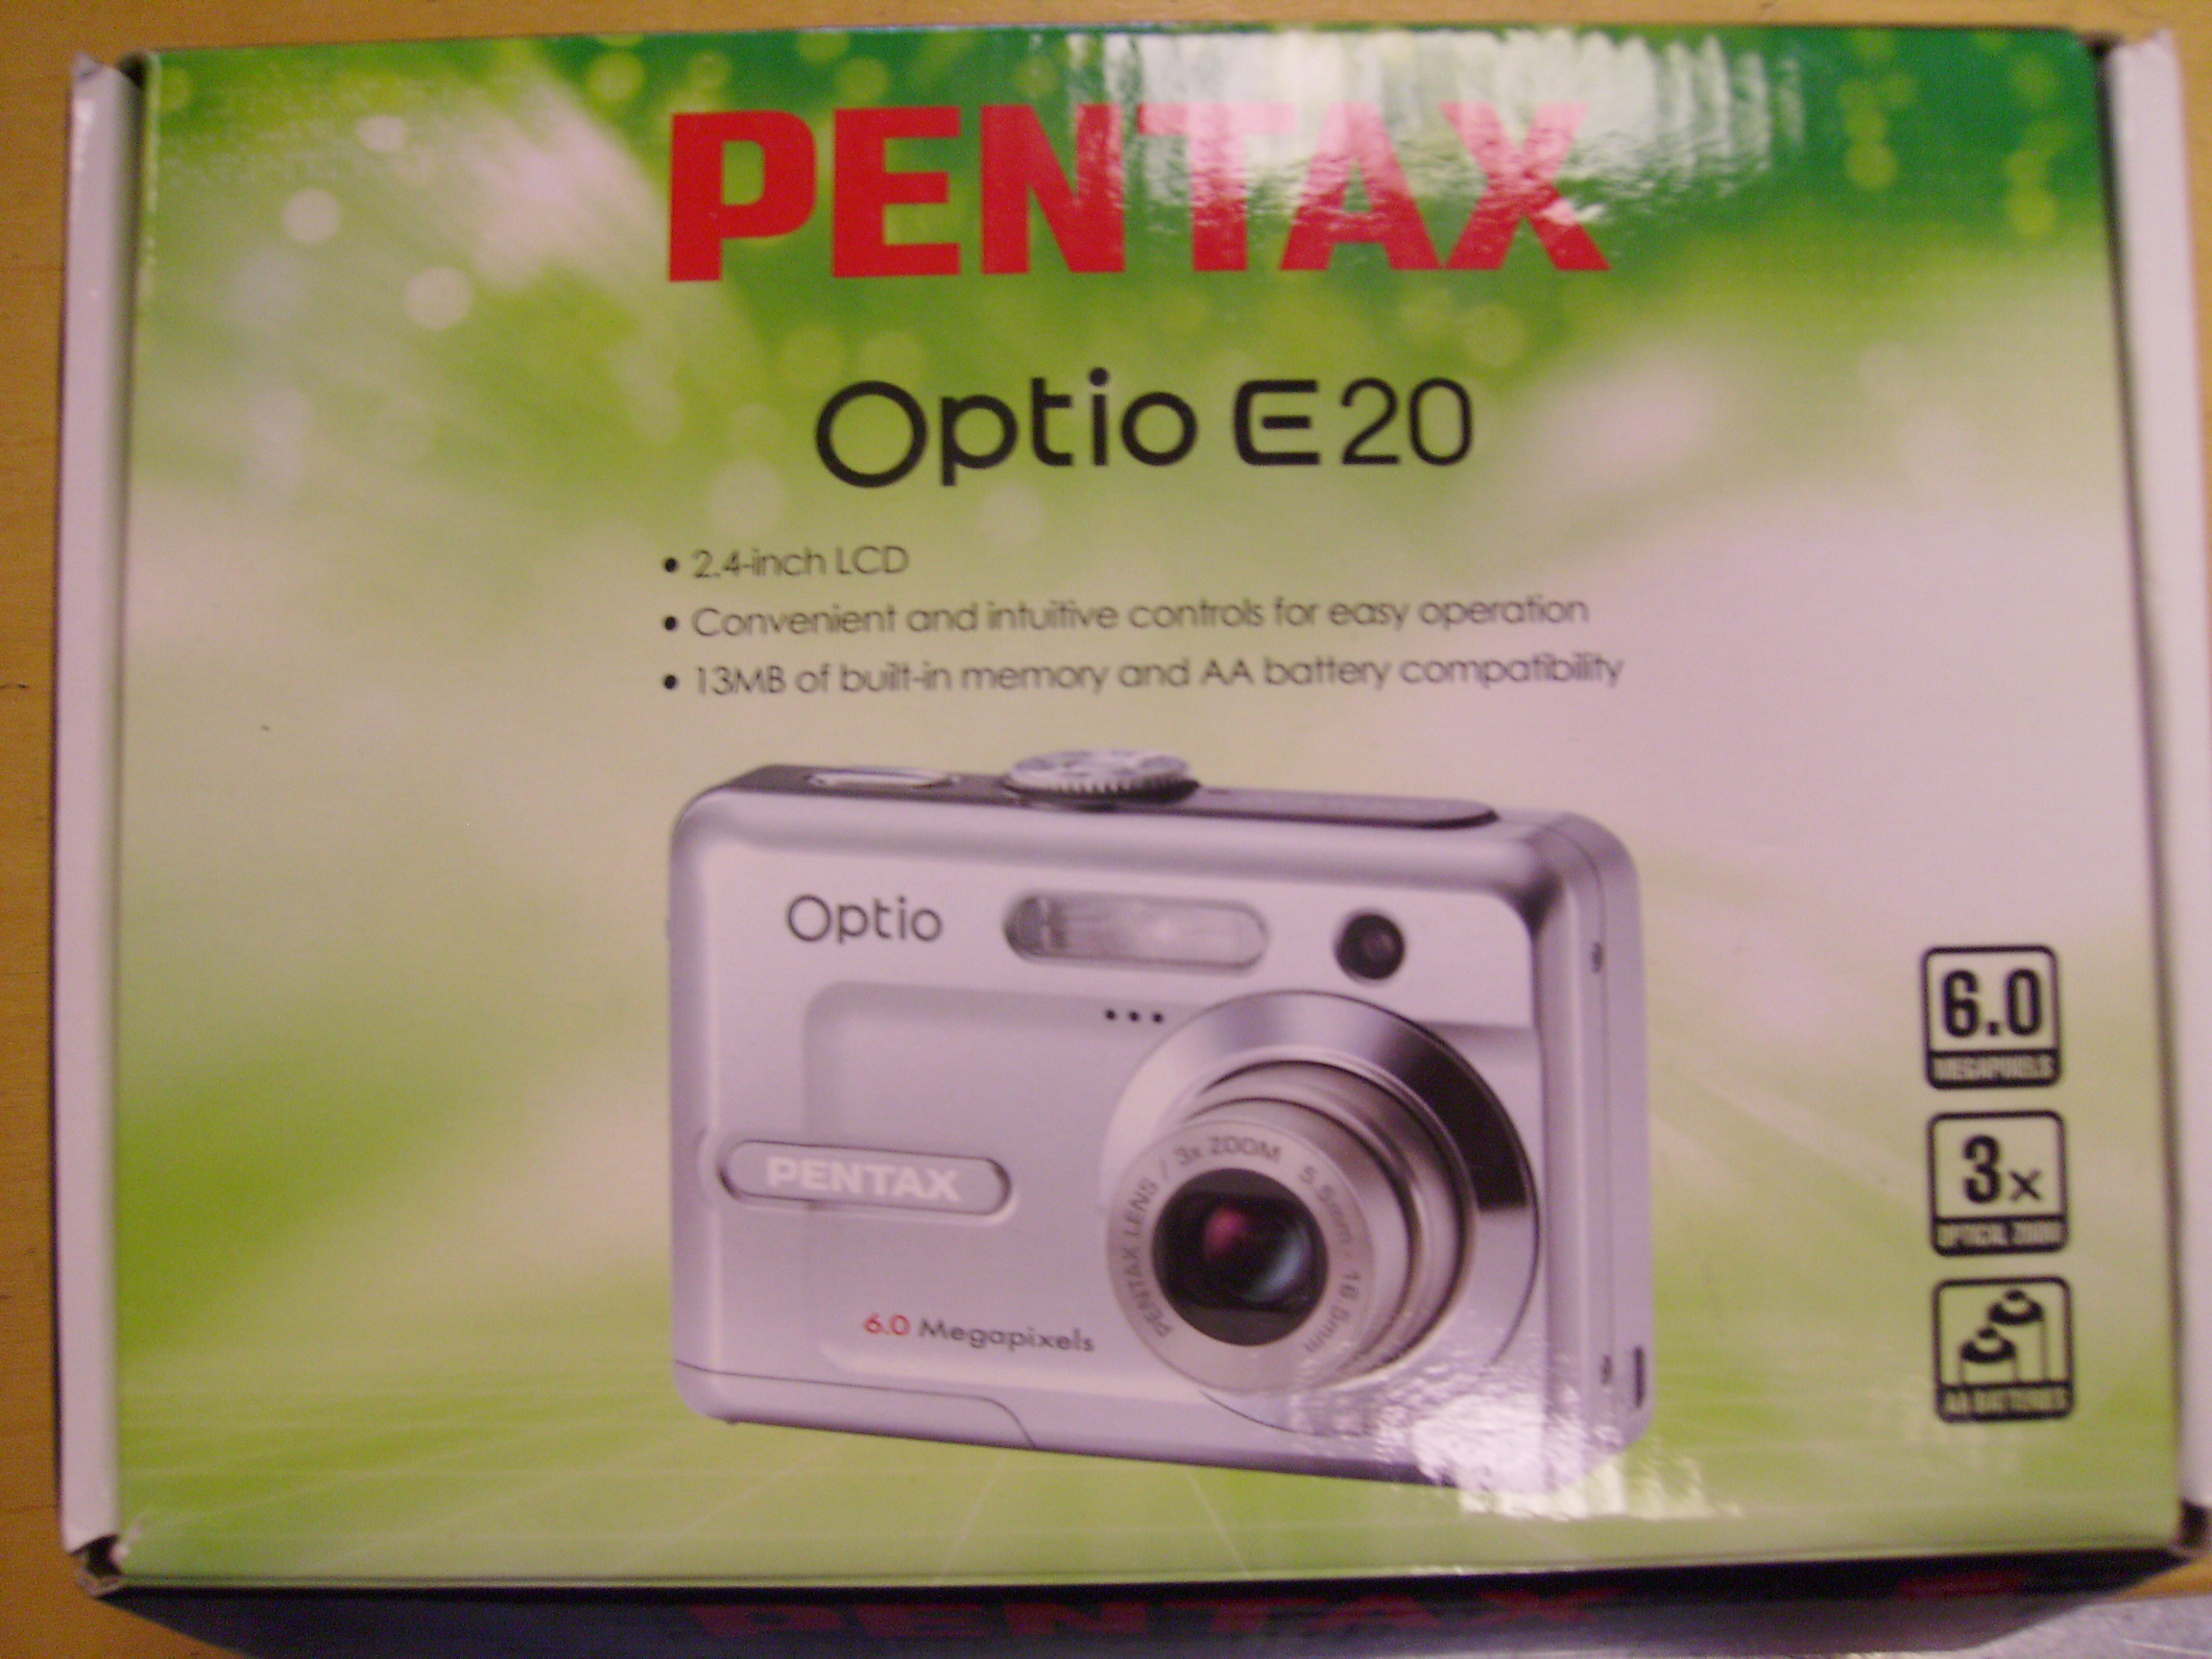 Digital Camera and Camcorders - from £15